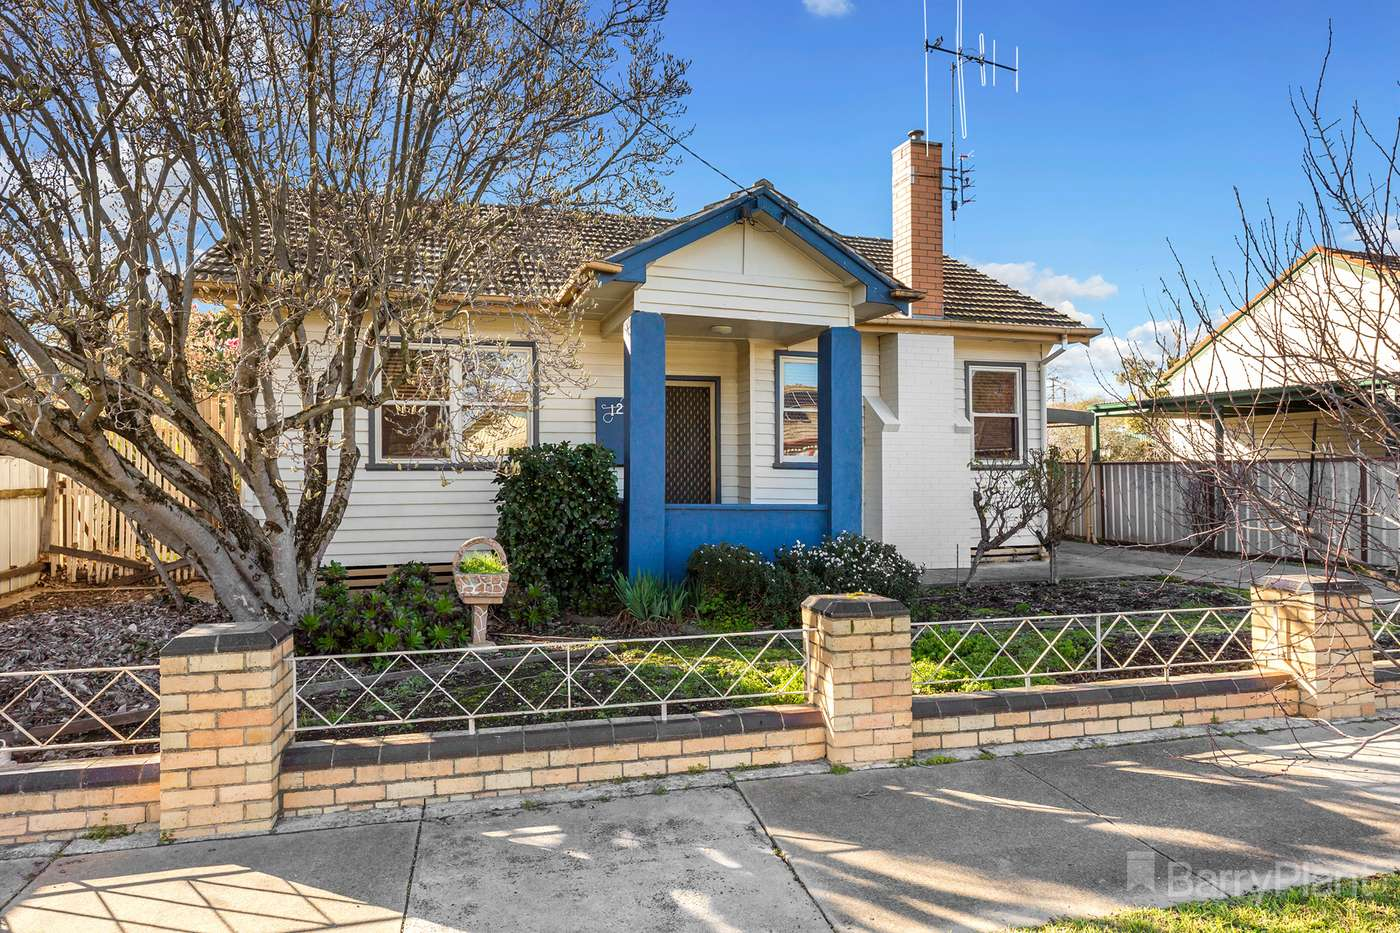 Main view of Homely house listing, 12 Royal Avenue, Kennington, VIC 3550